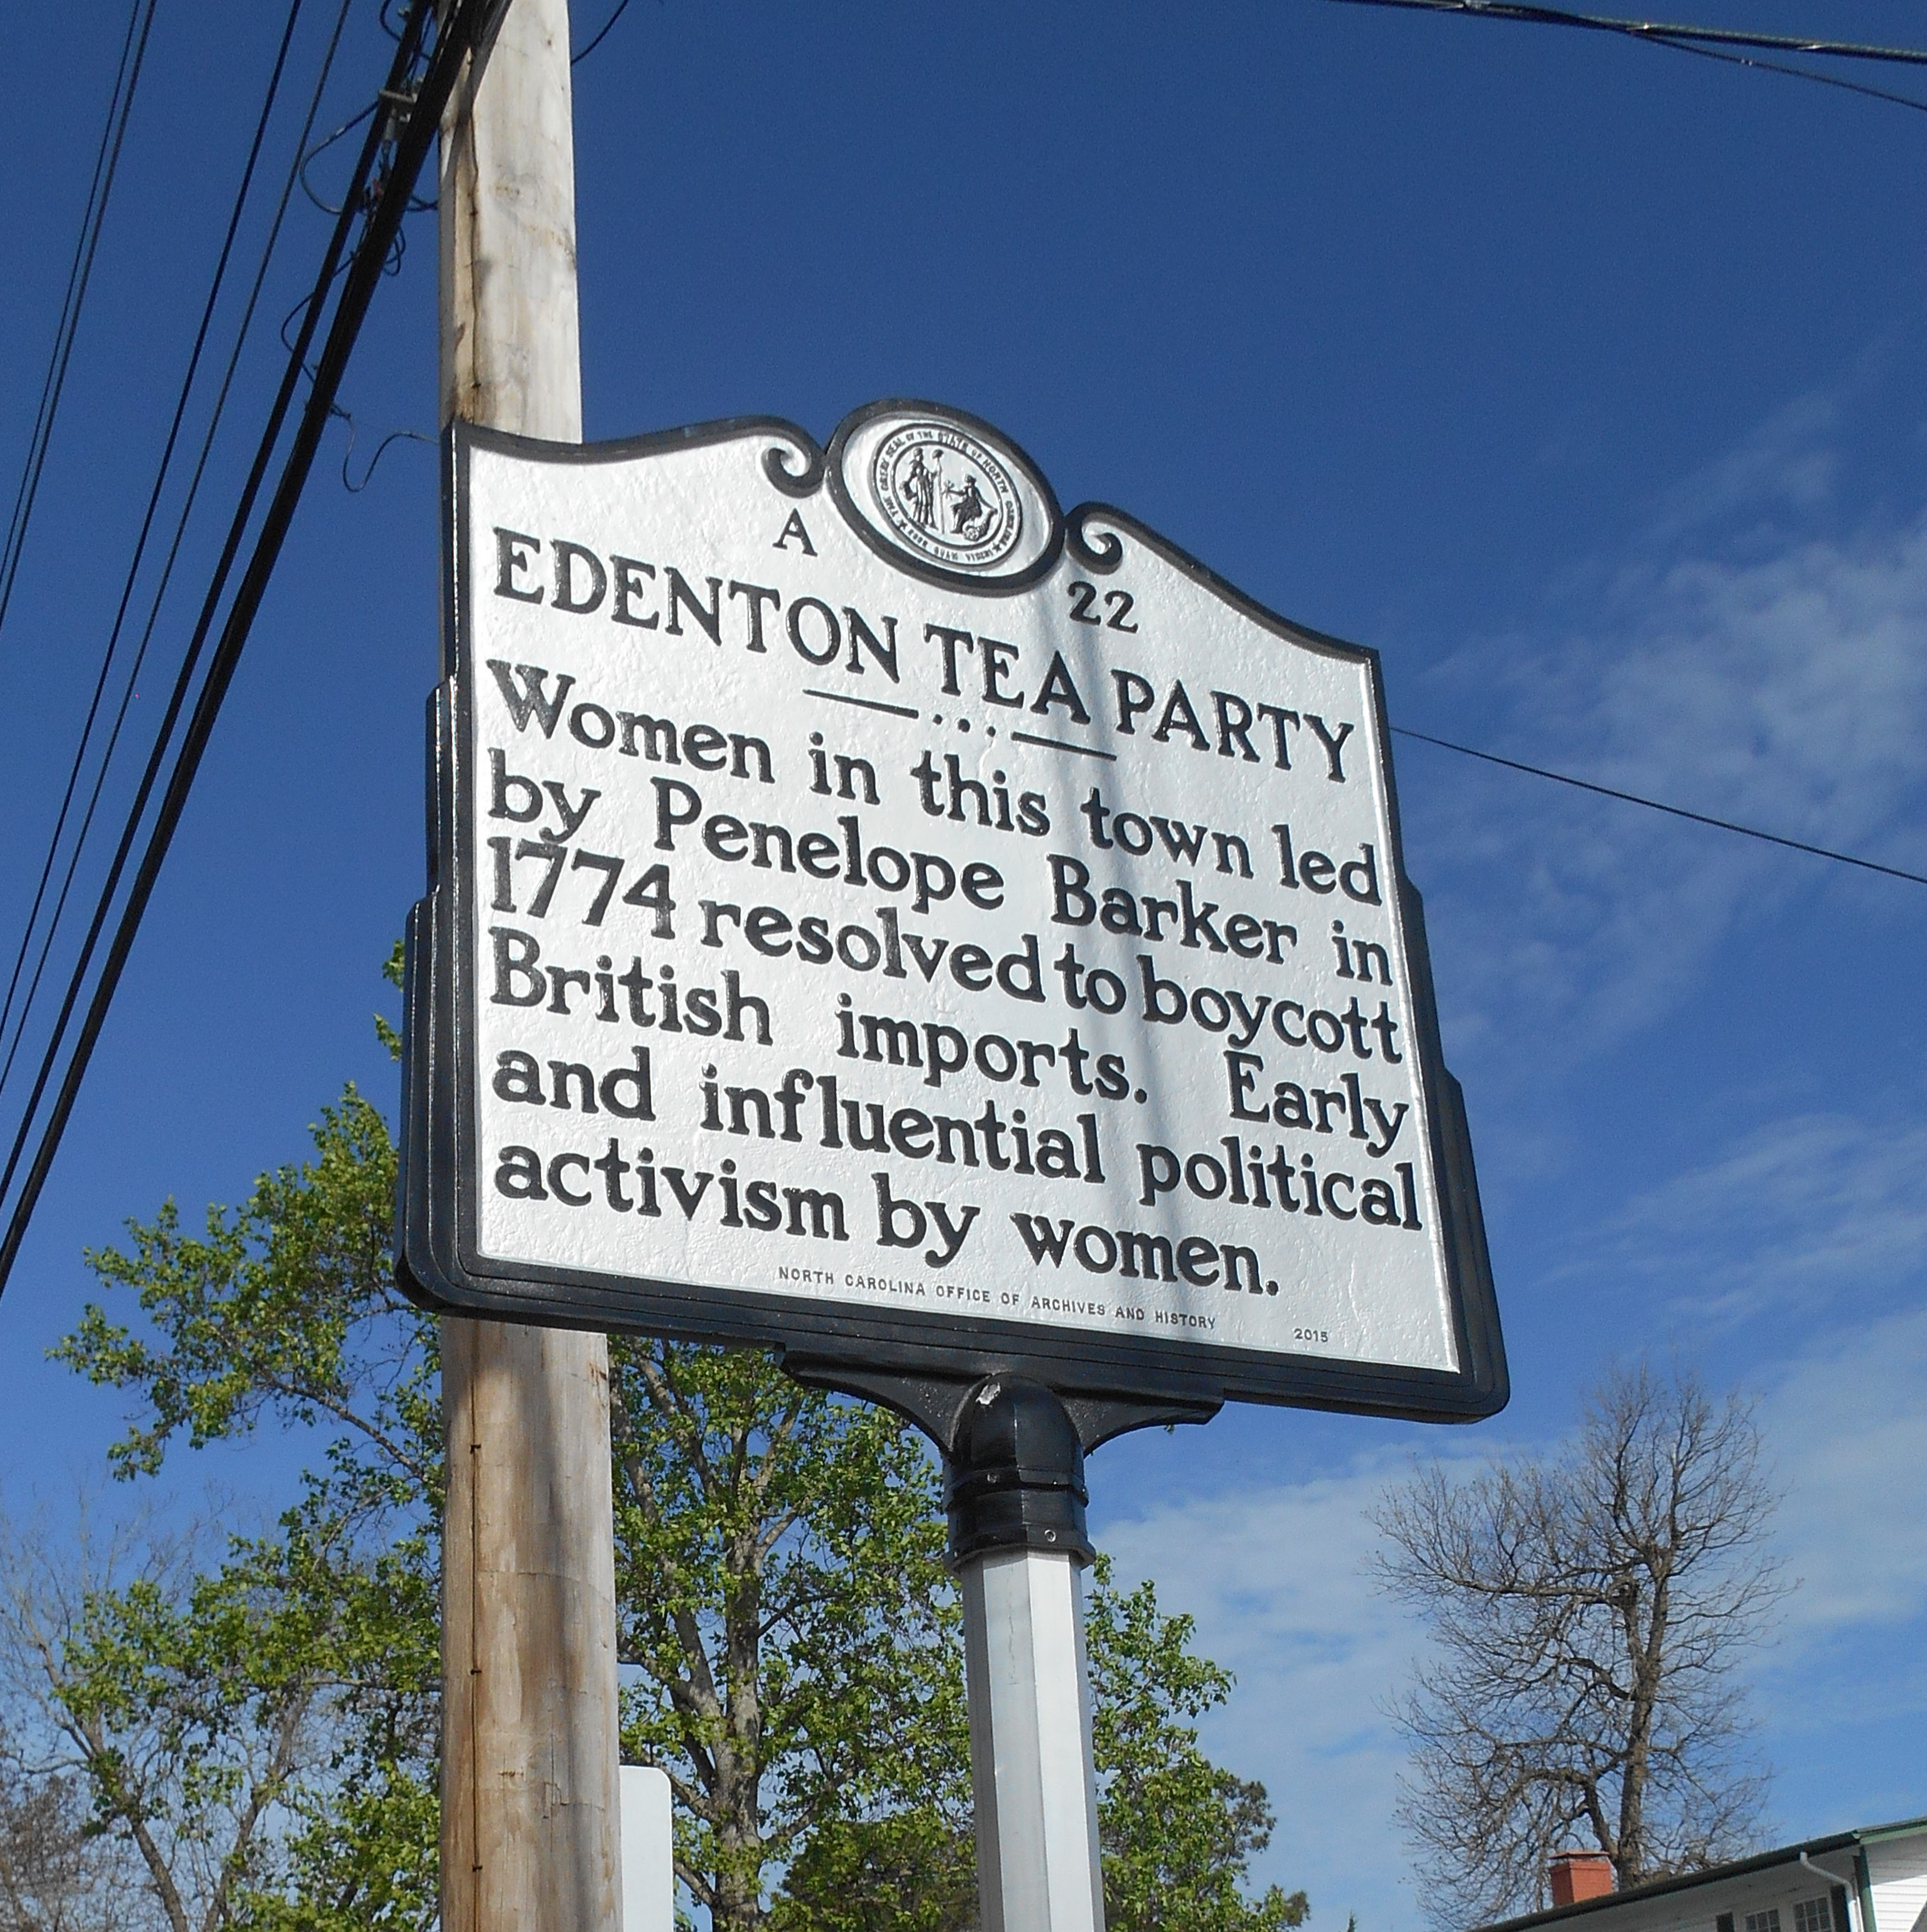 An image of the Edenton Tea Party historical marker.